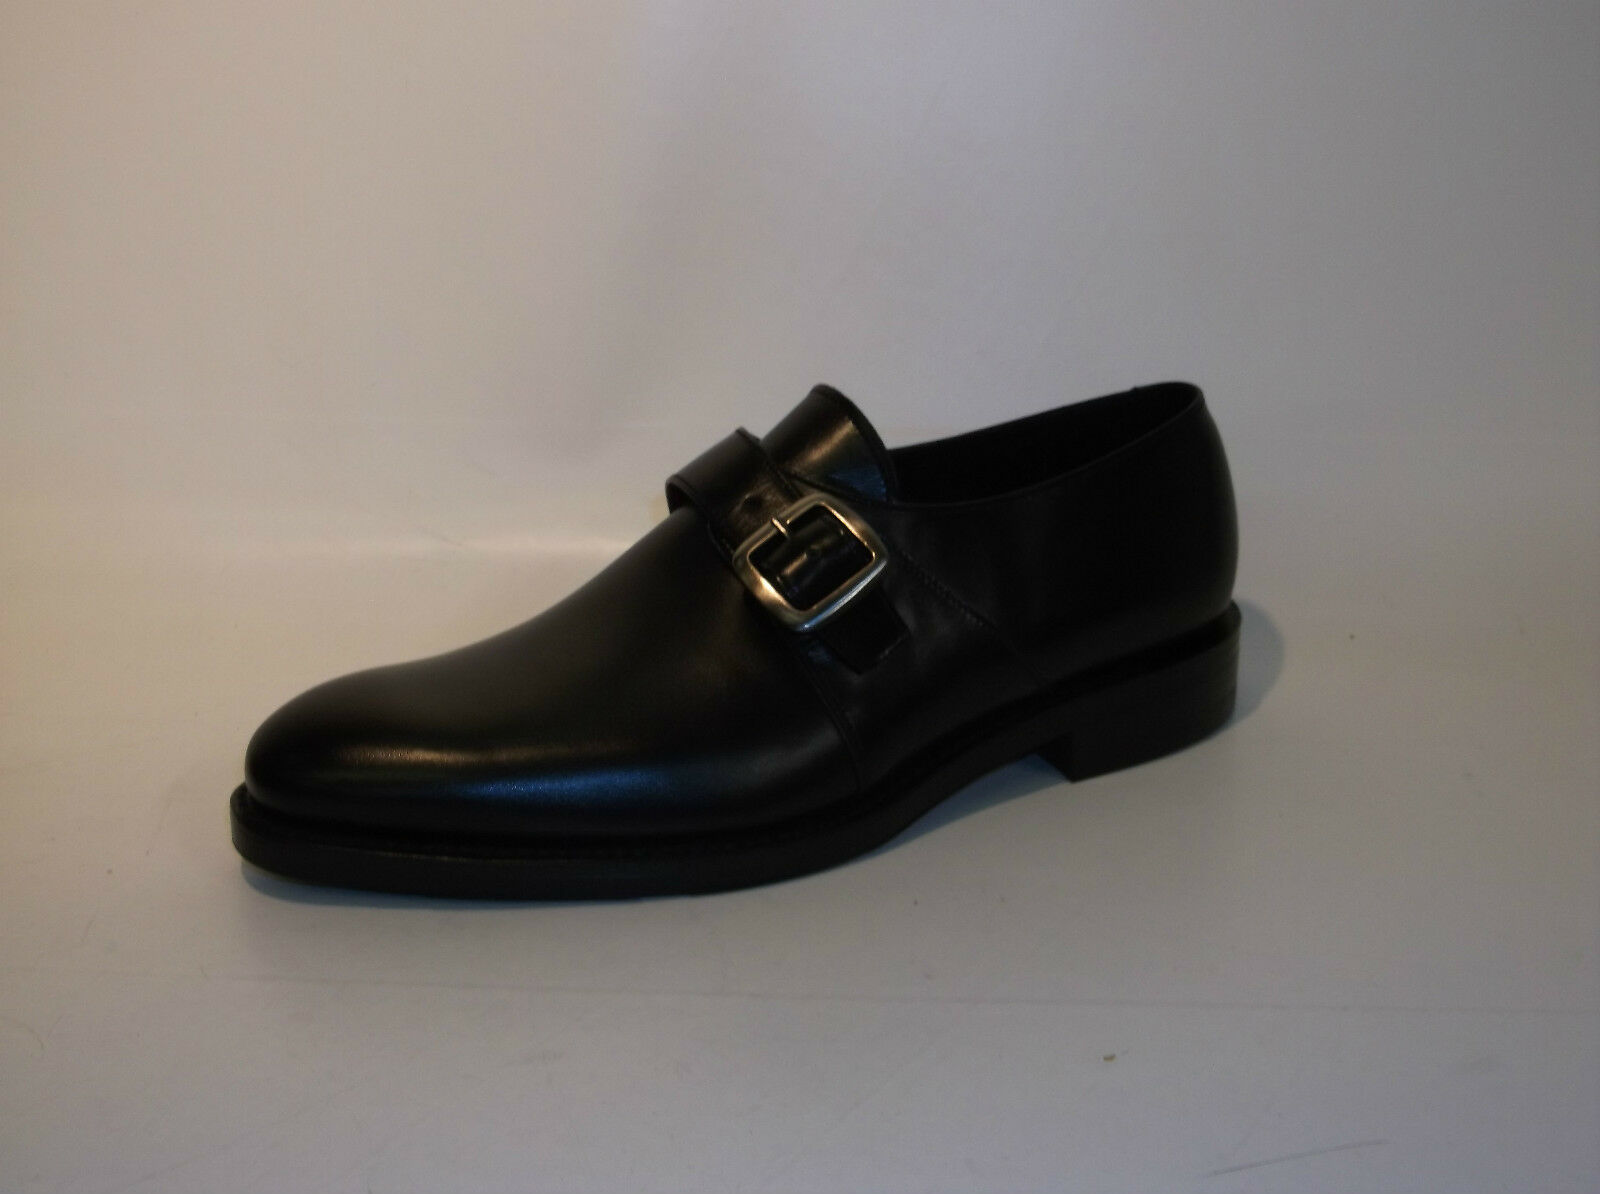 MENS LOAKE LEATHER SLIP ON WITH A BUCKLE STYLE FLEET